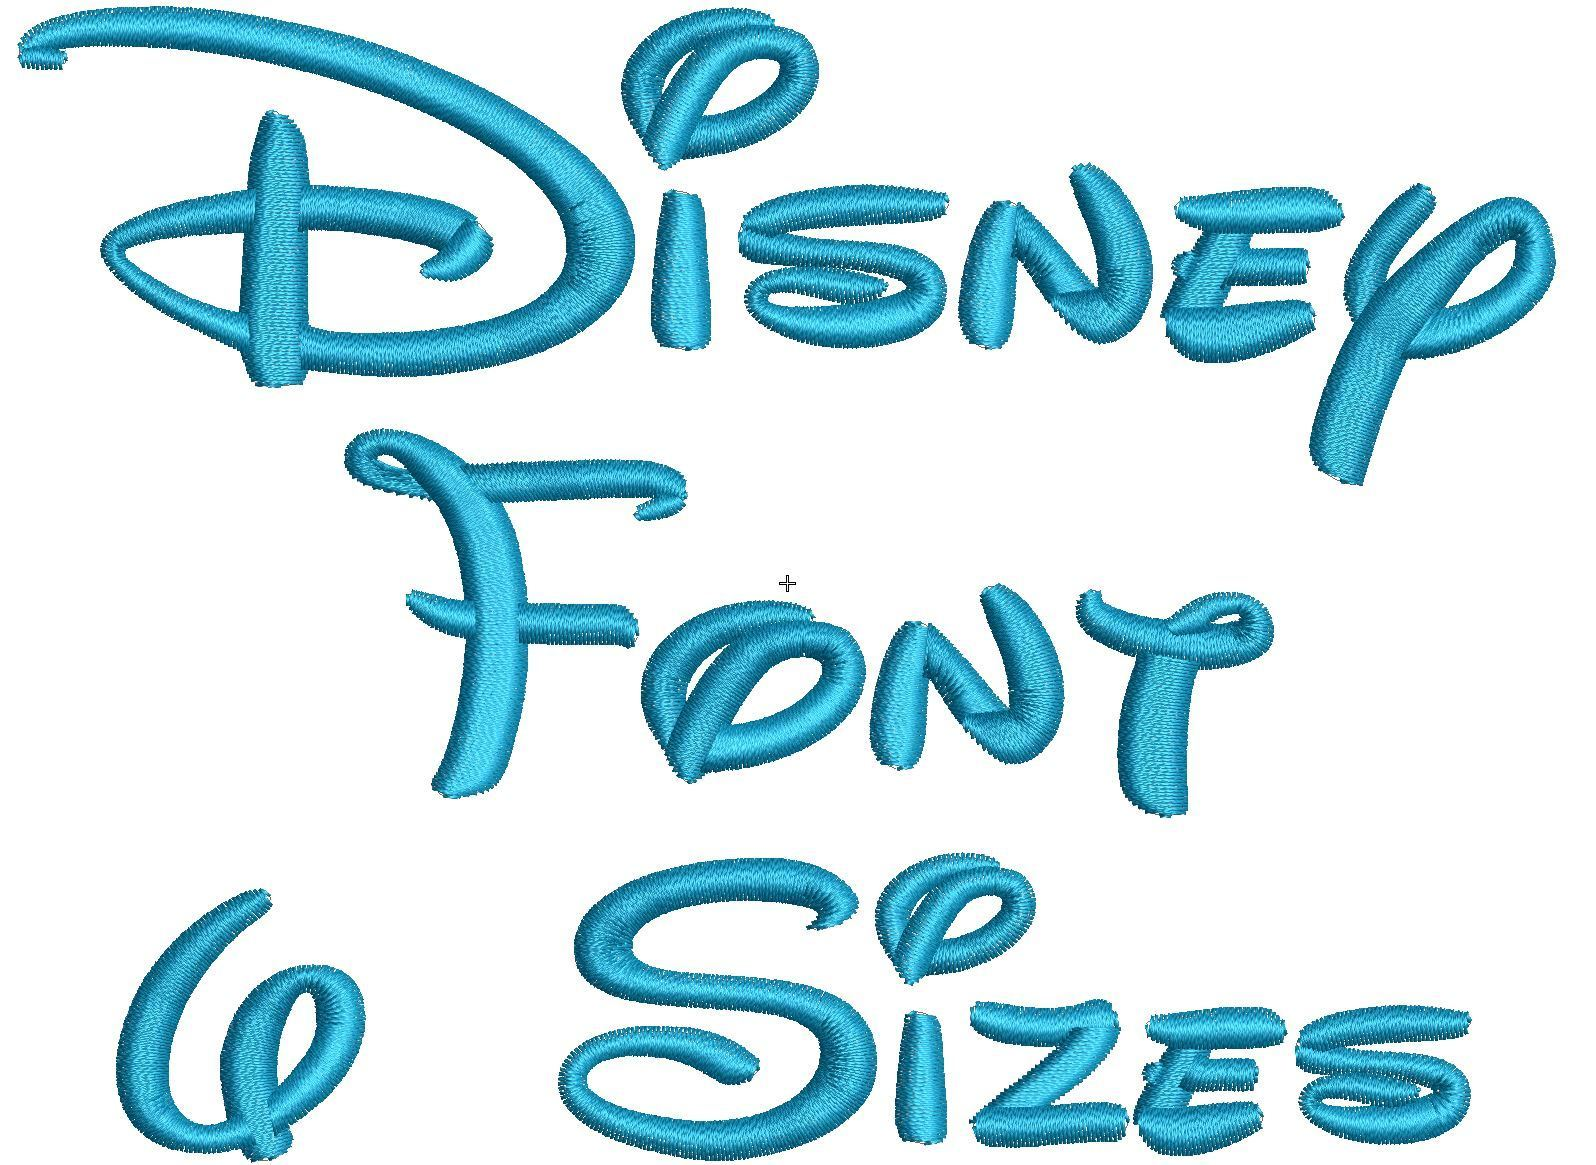 12 Disney Embroidery Font Images